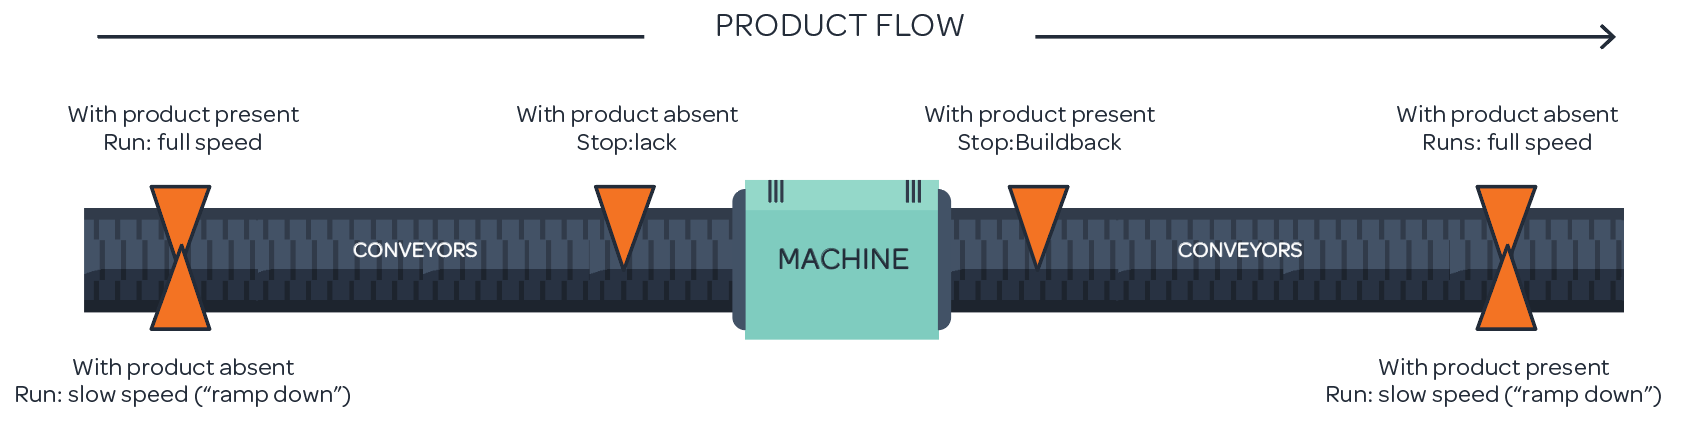 Product Flow through production line